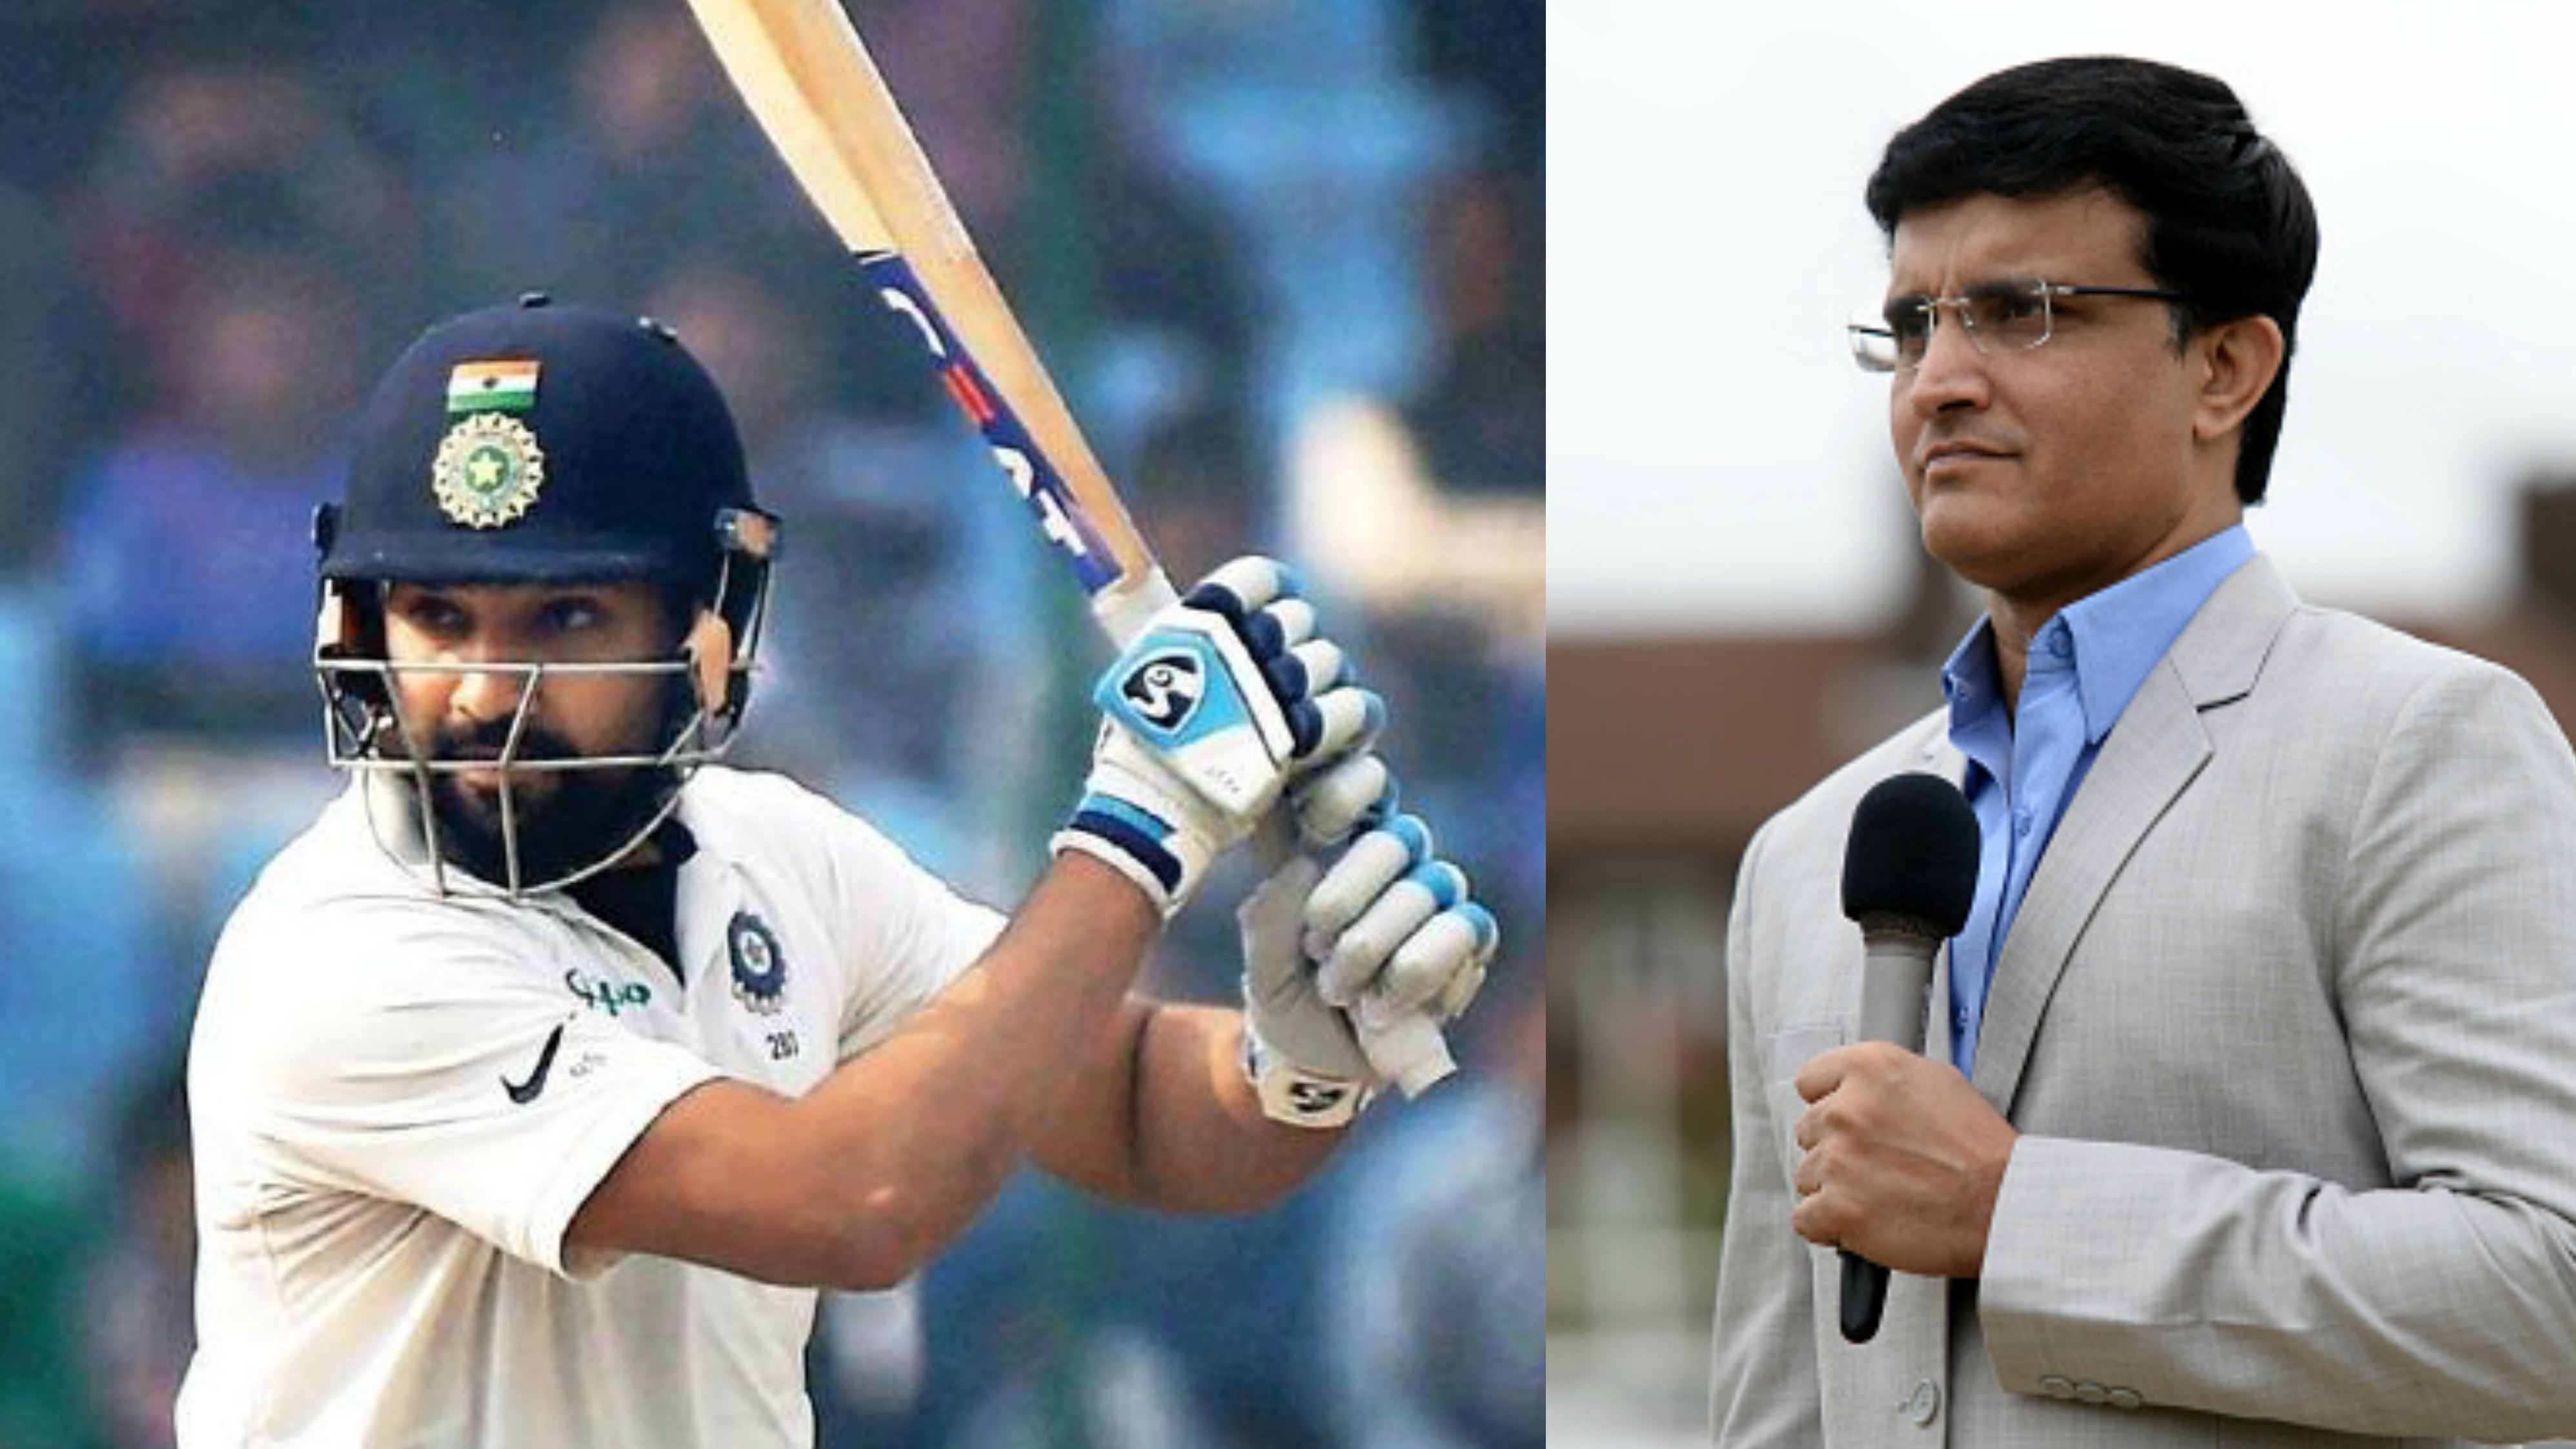 AUS v IND 2018-19: Sourav Ganguly bats for Rohit Sharma to bat at No. 6 in Tests